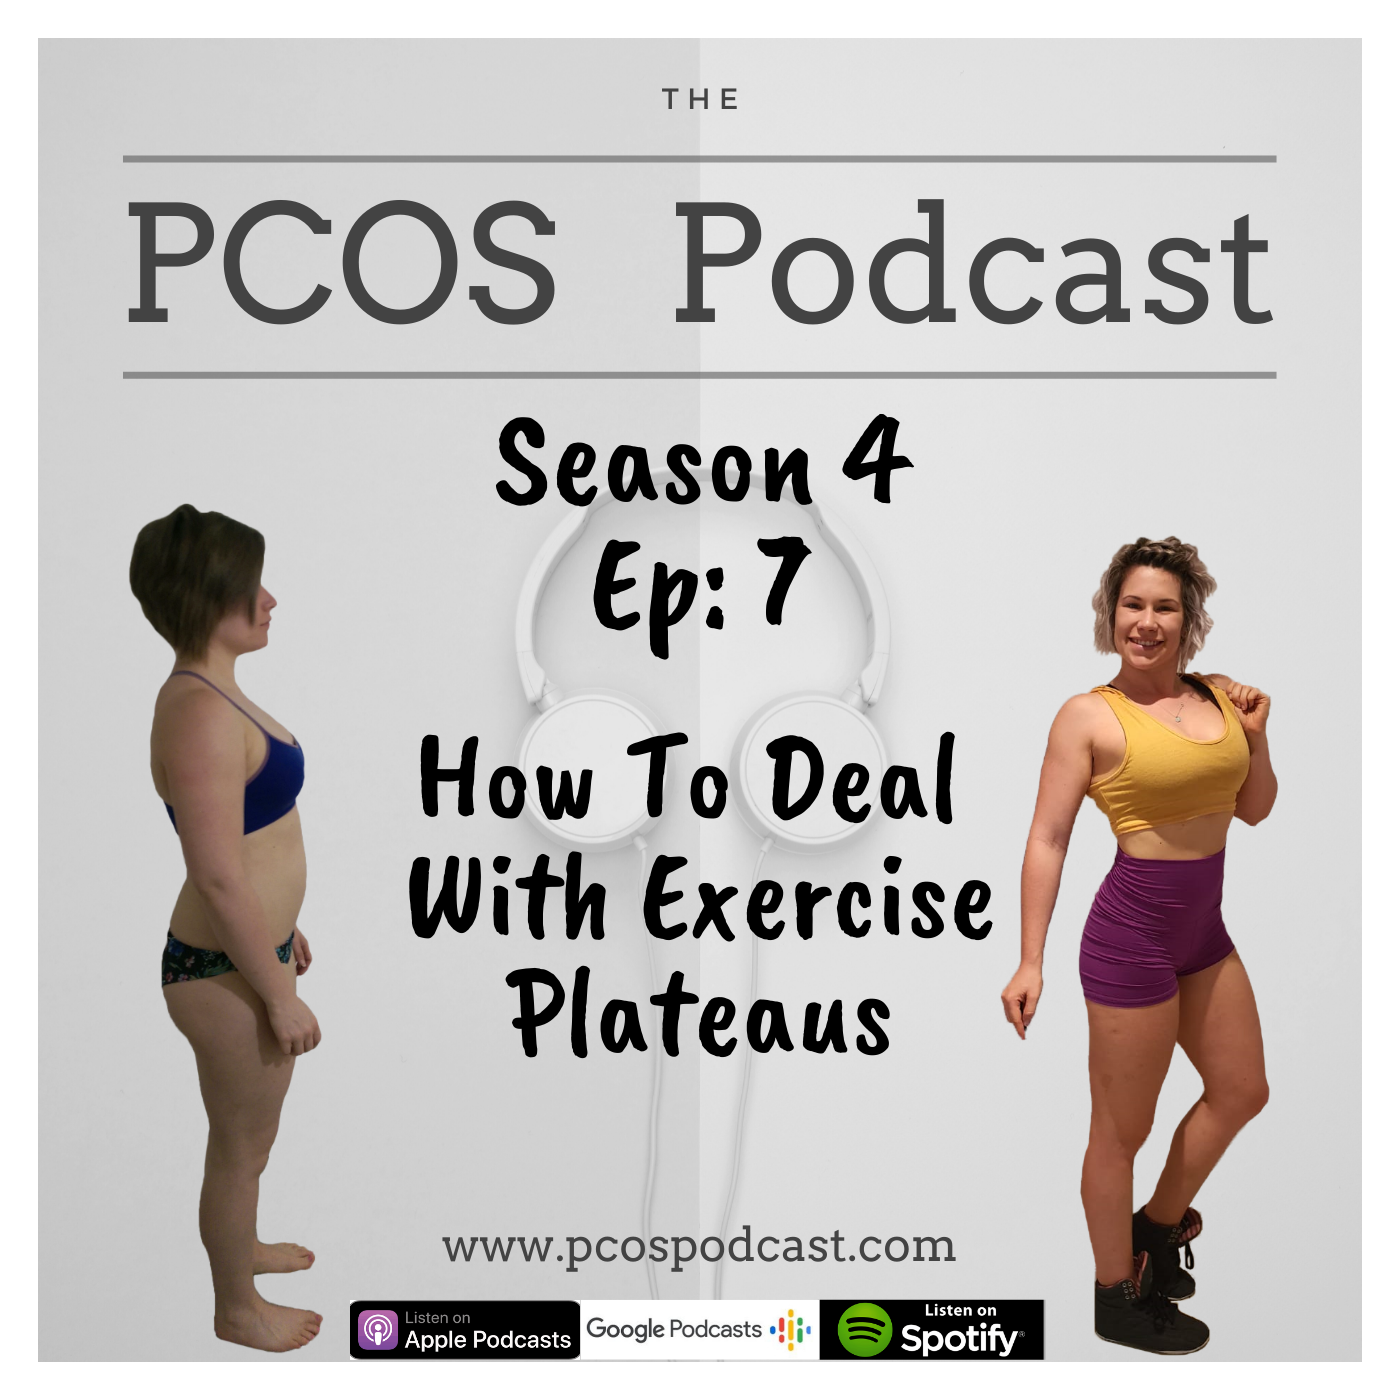 S4 E7 - HowToDealWithExercisePlateaus